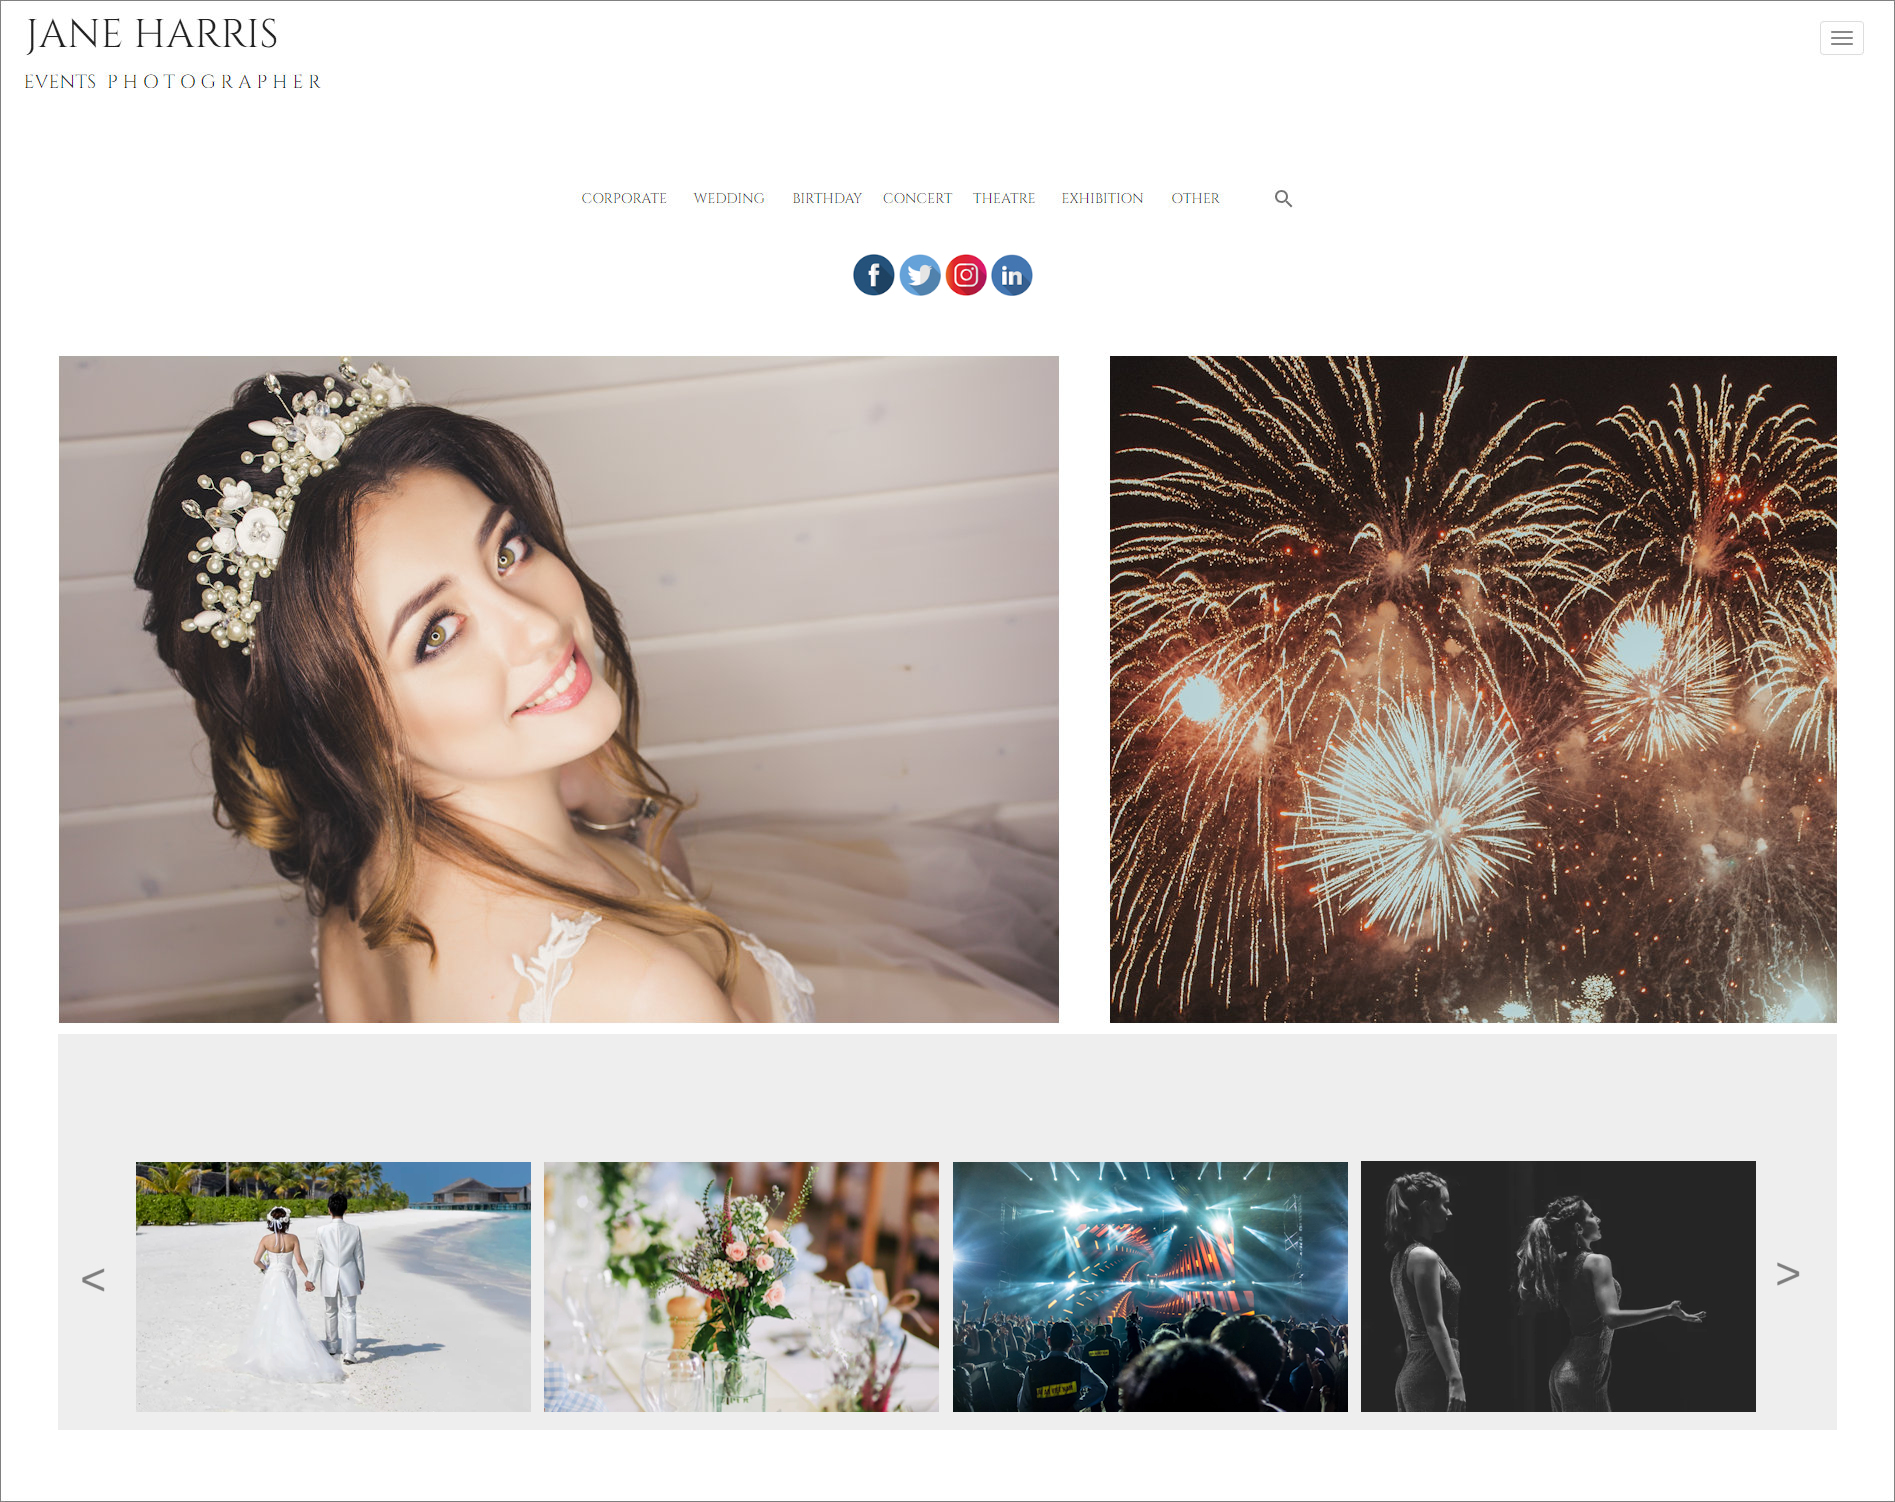 Web Design Example layout template for a photographer